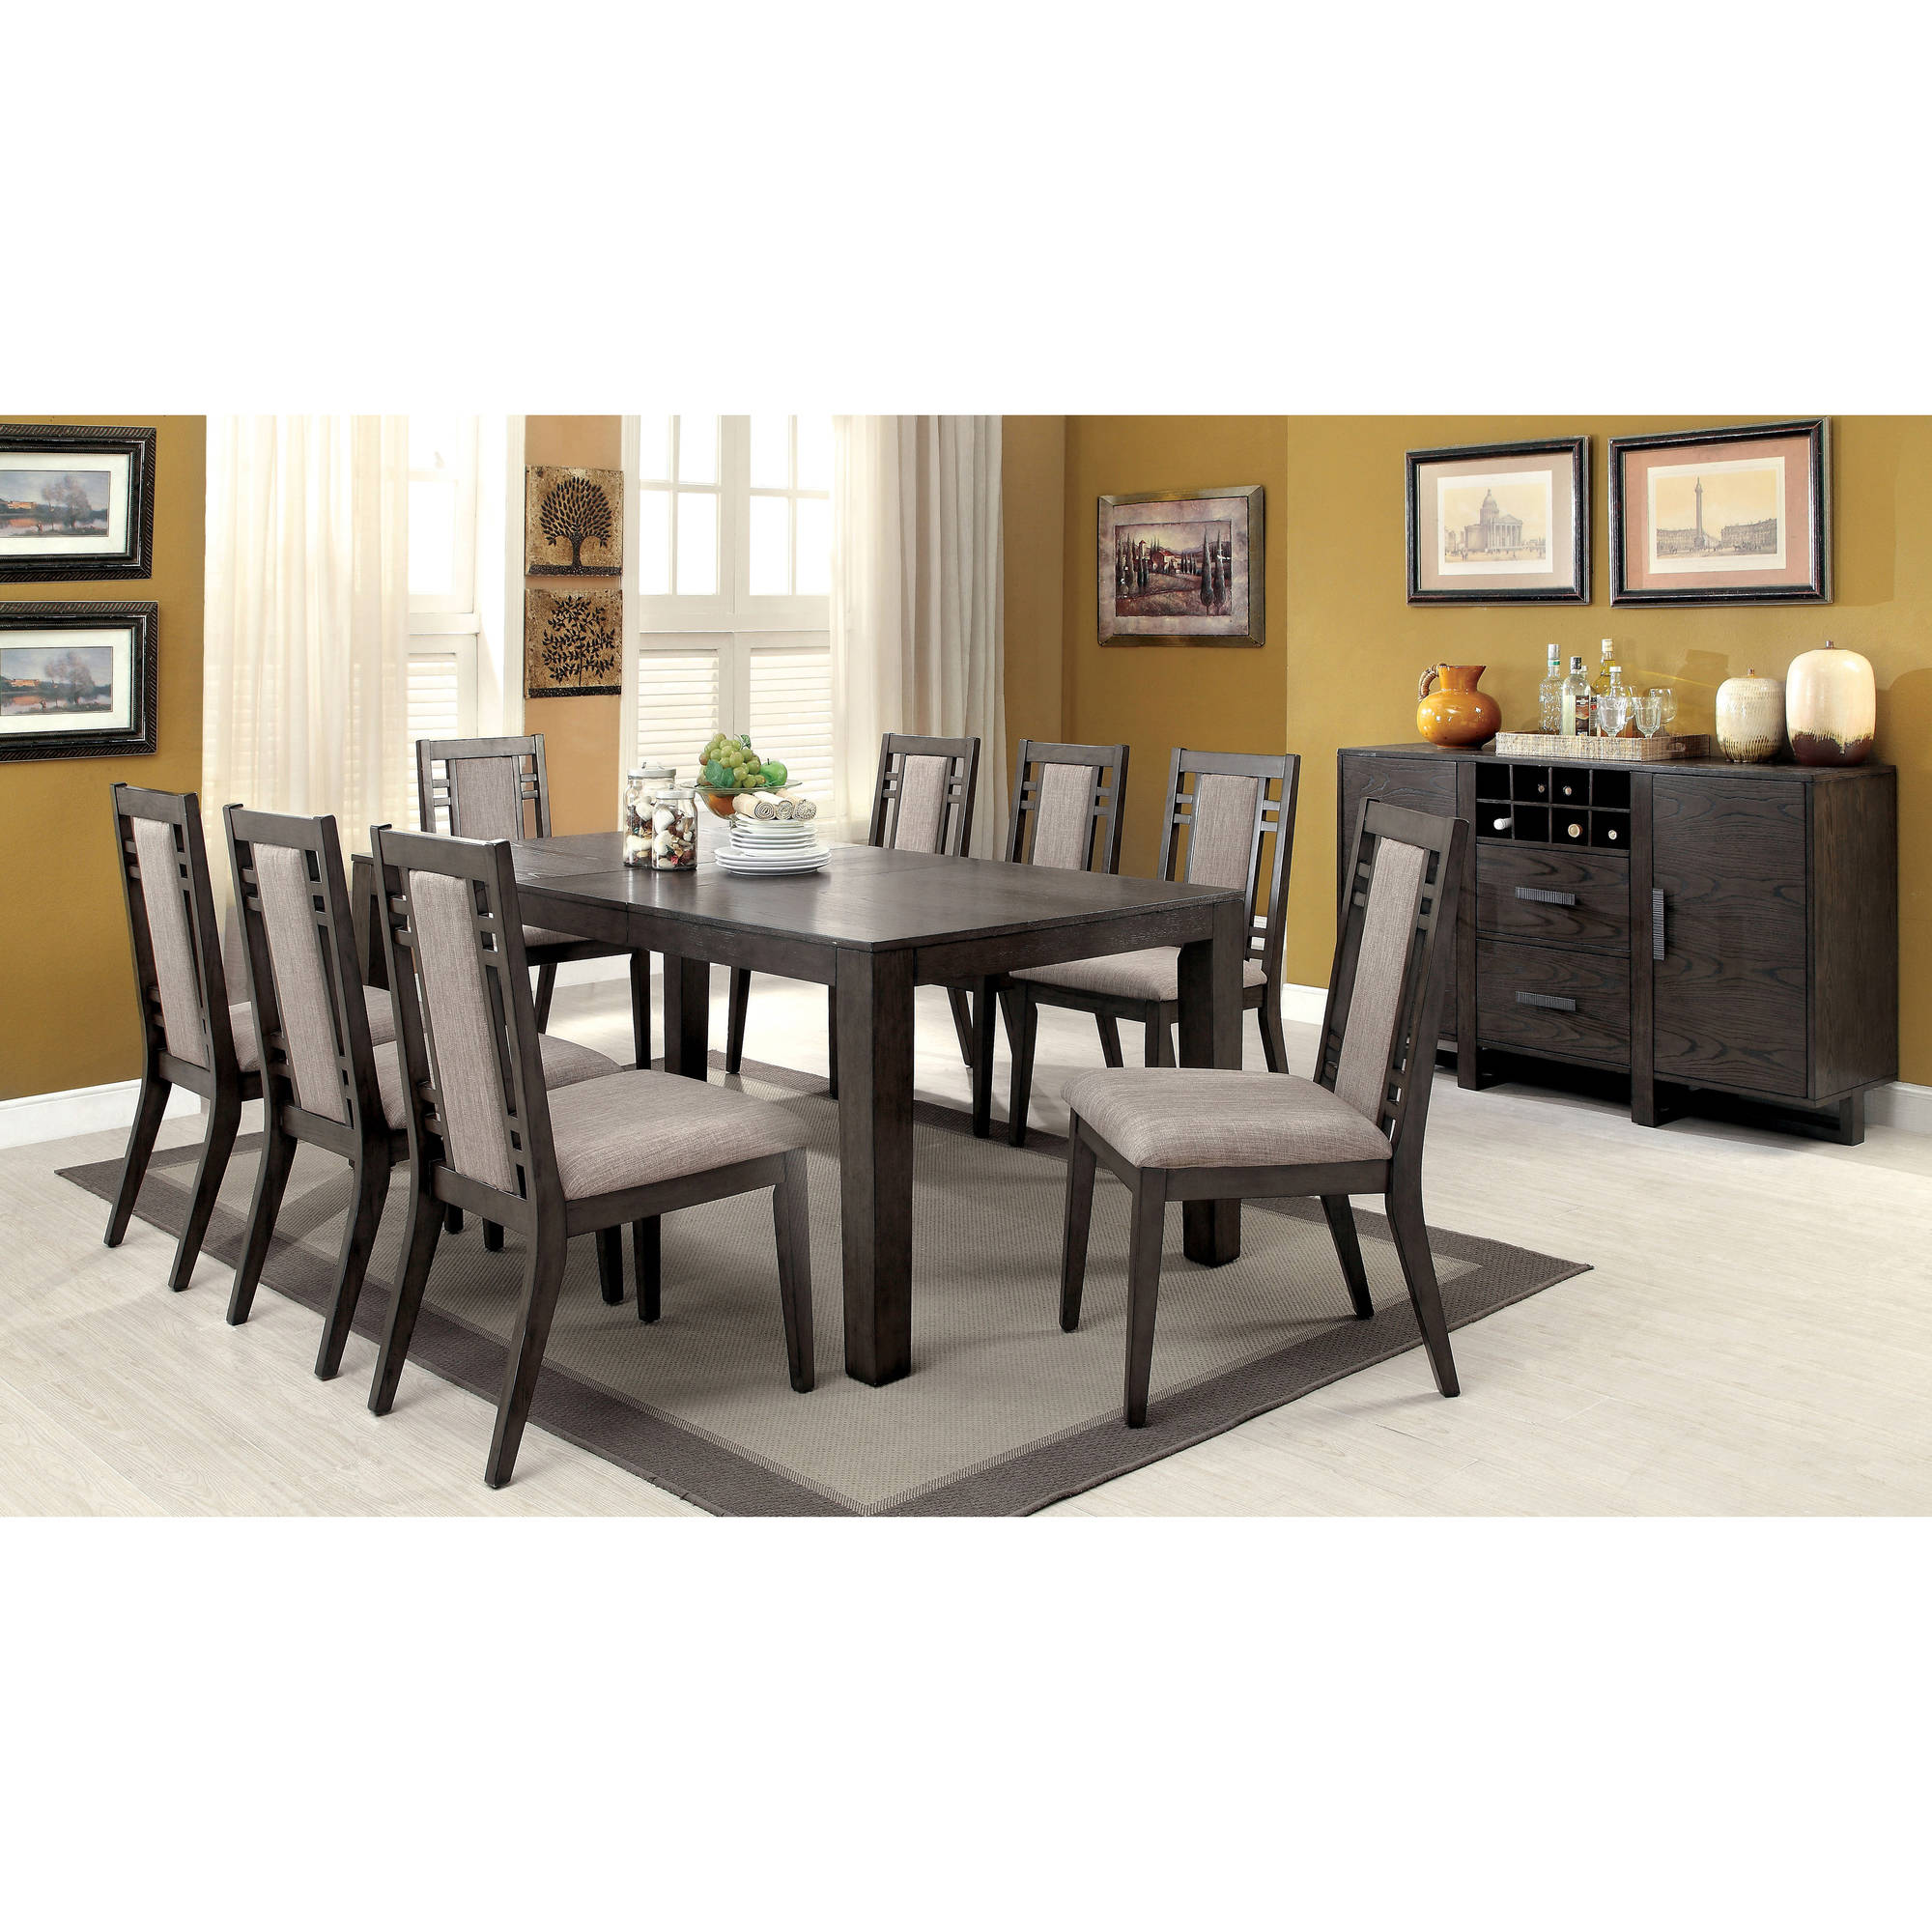 Charmant Furniture Of America Ferrel Modern 9 Piece Dining Set, Weathered Gray